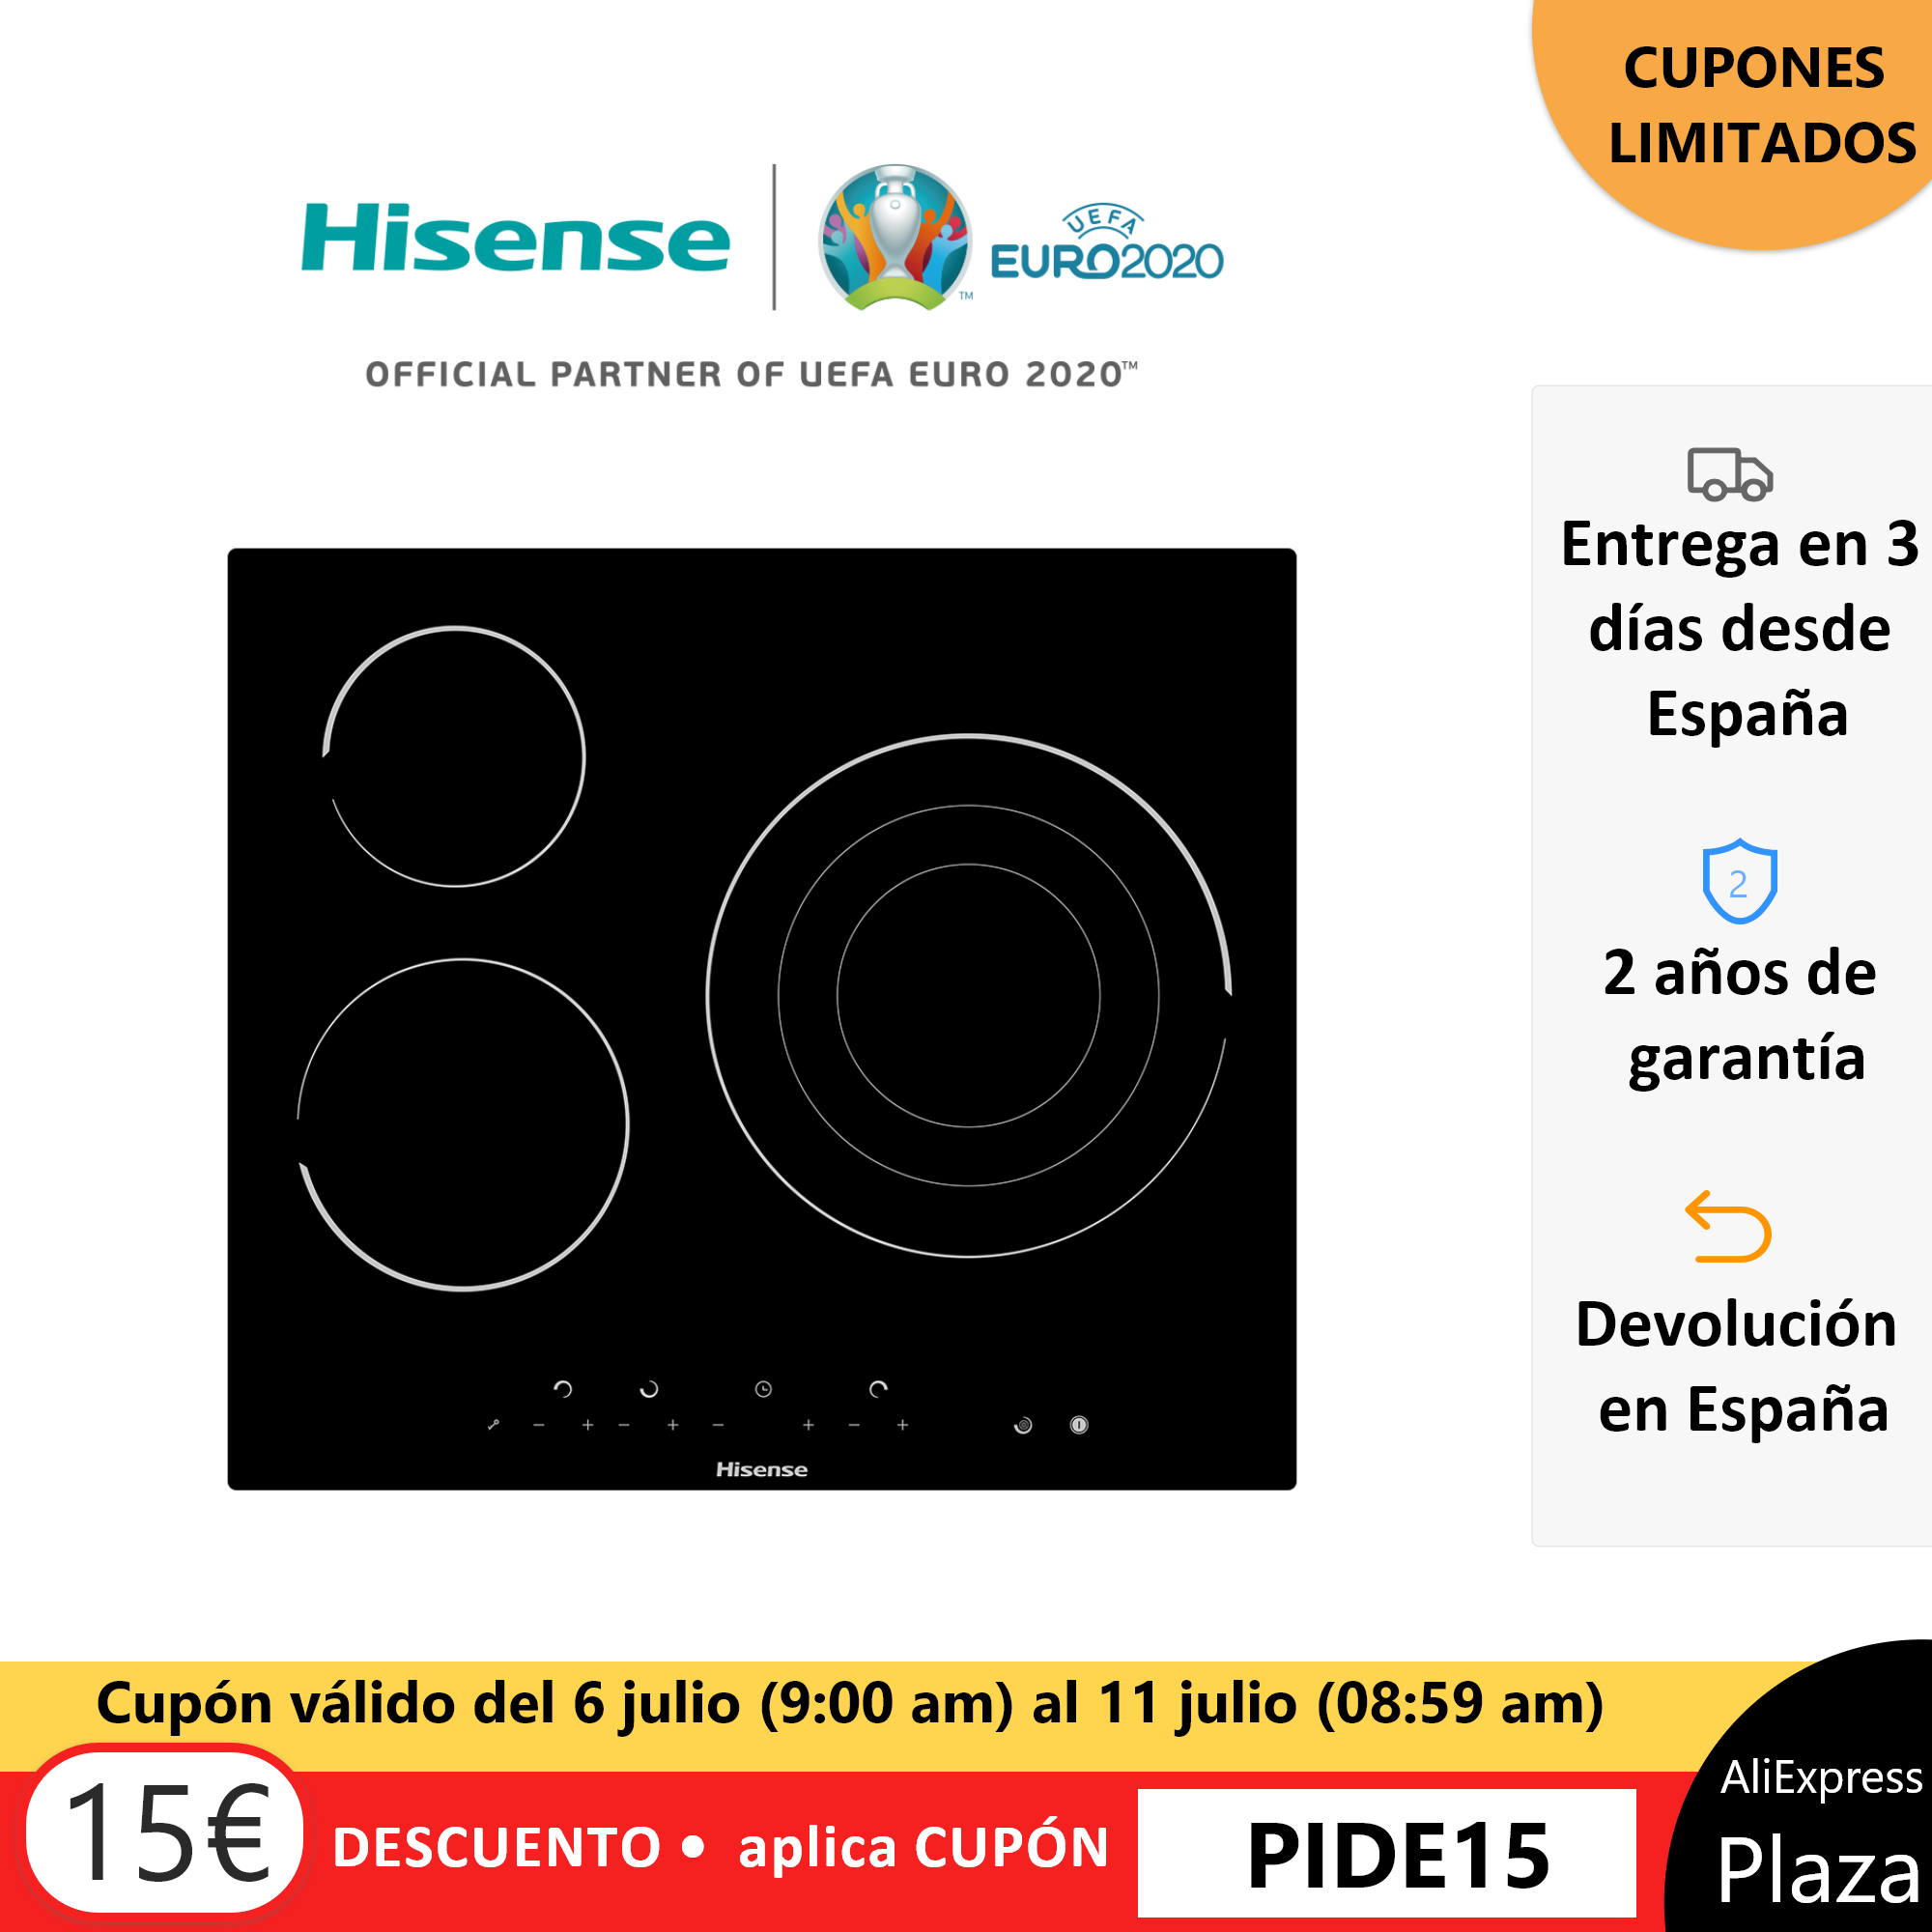 Hisense E6322C ceramic hob top, ceramic glass Panel, 3 Burners, 5700 W, 59 × 6 × 52 cm